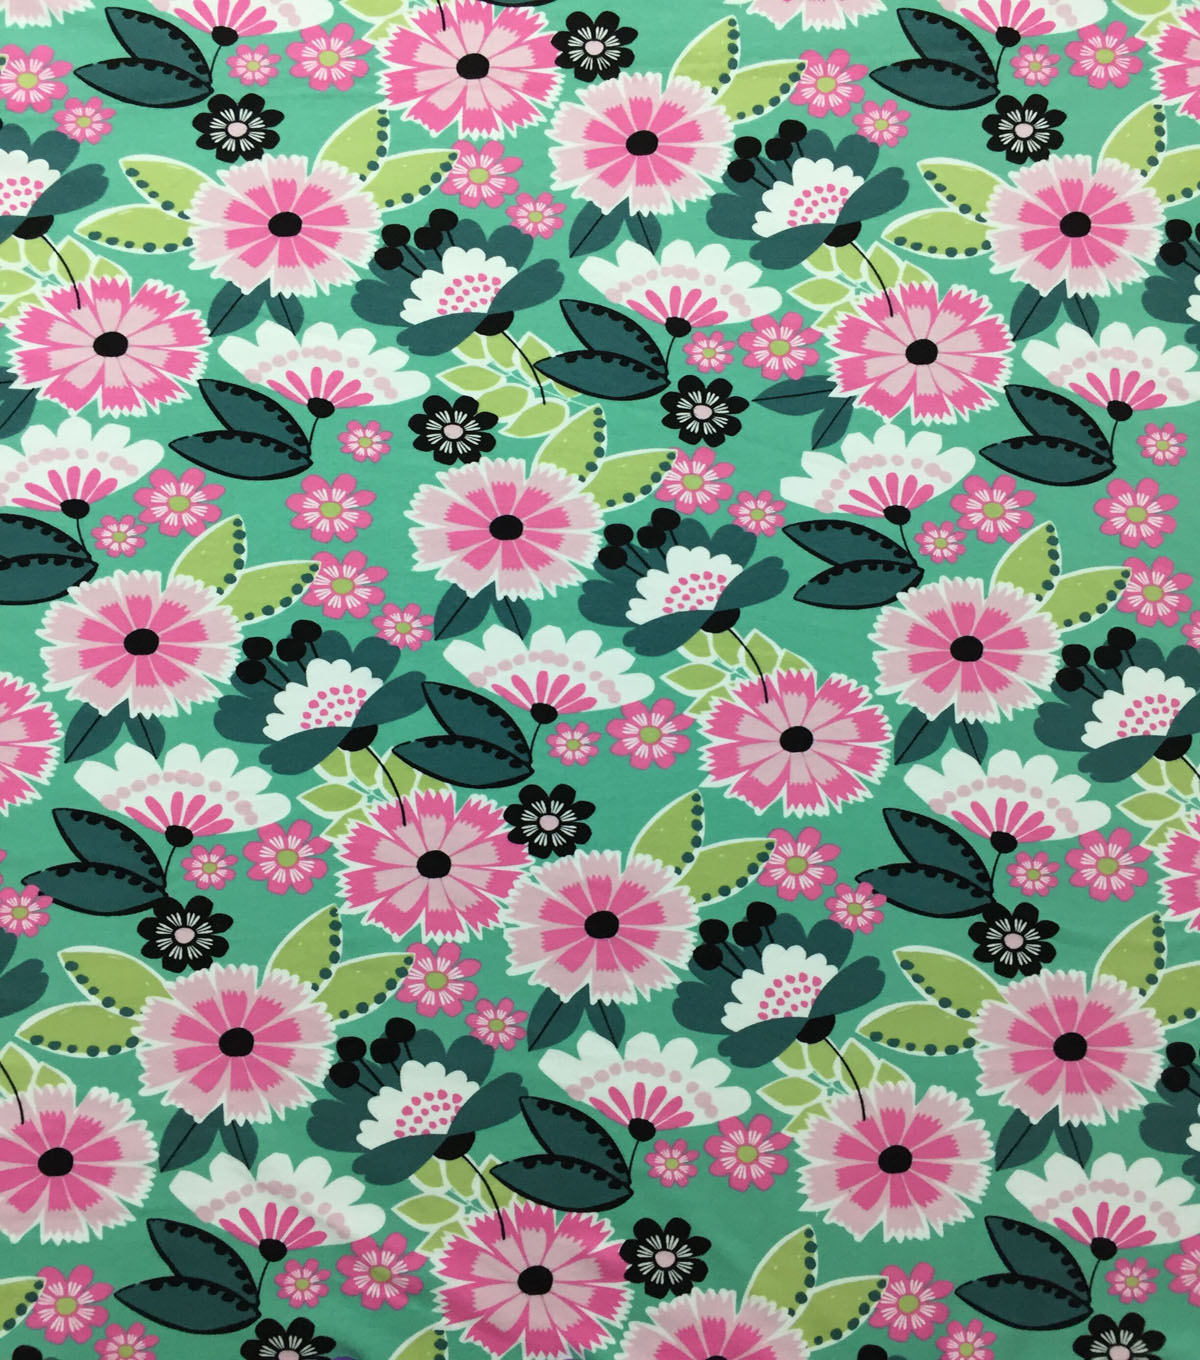 Doodles Cotton Interlock Fabric-Turquoise Mod Floral